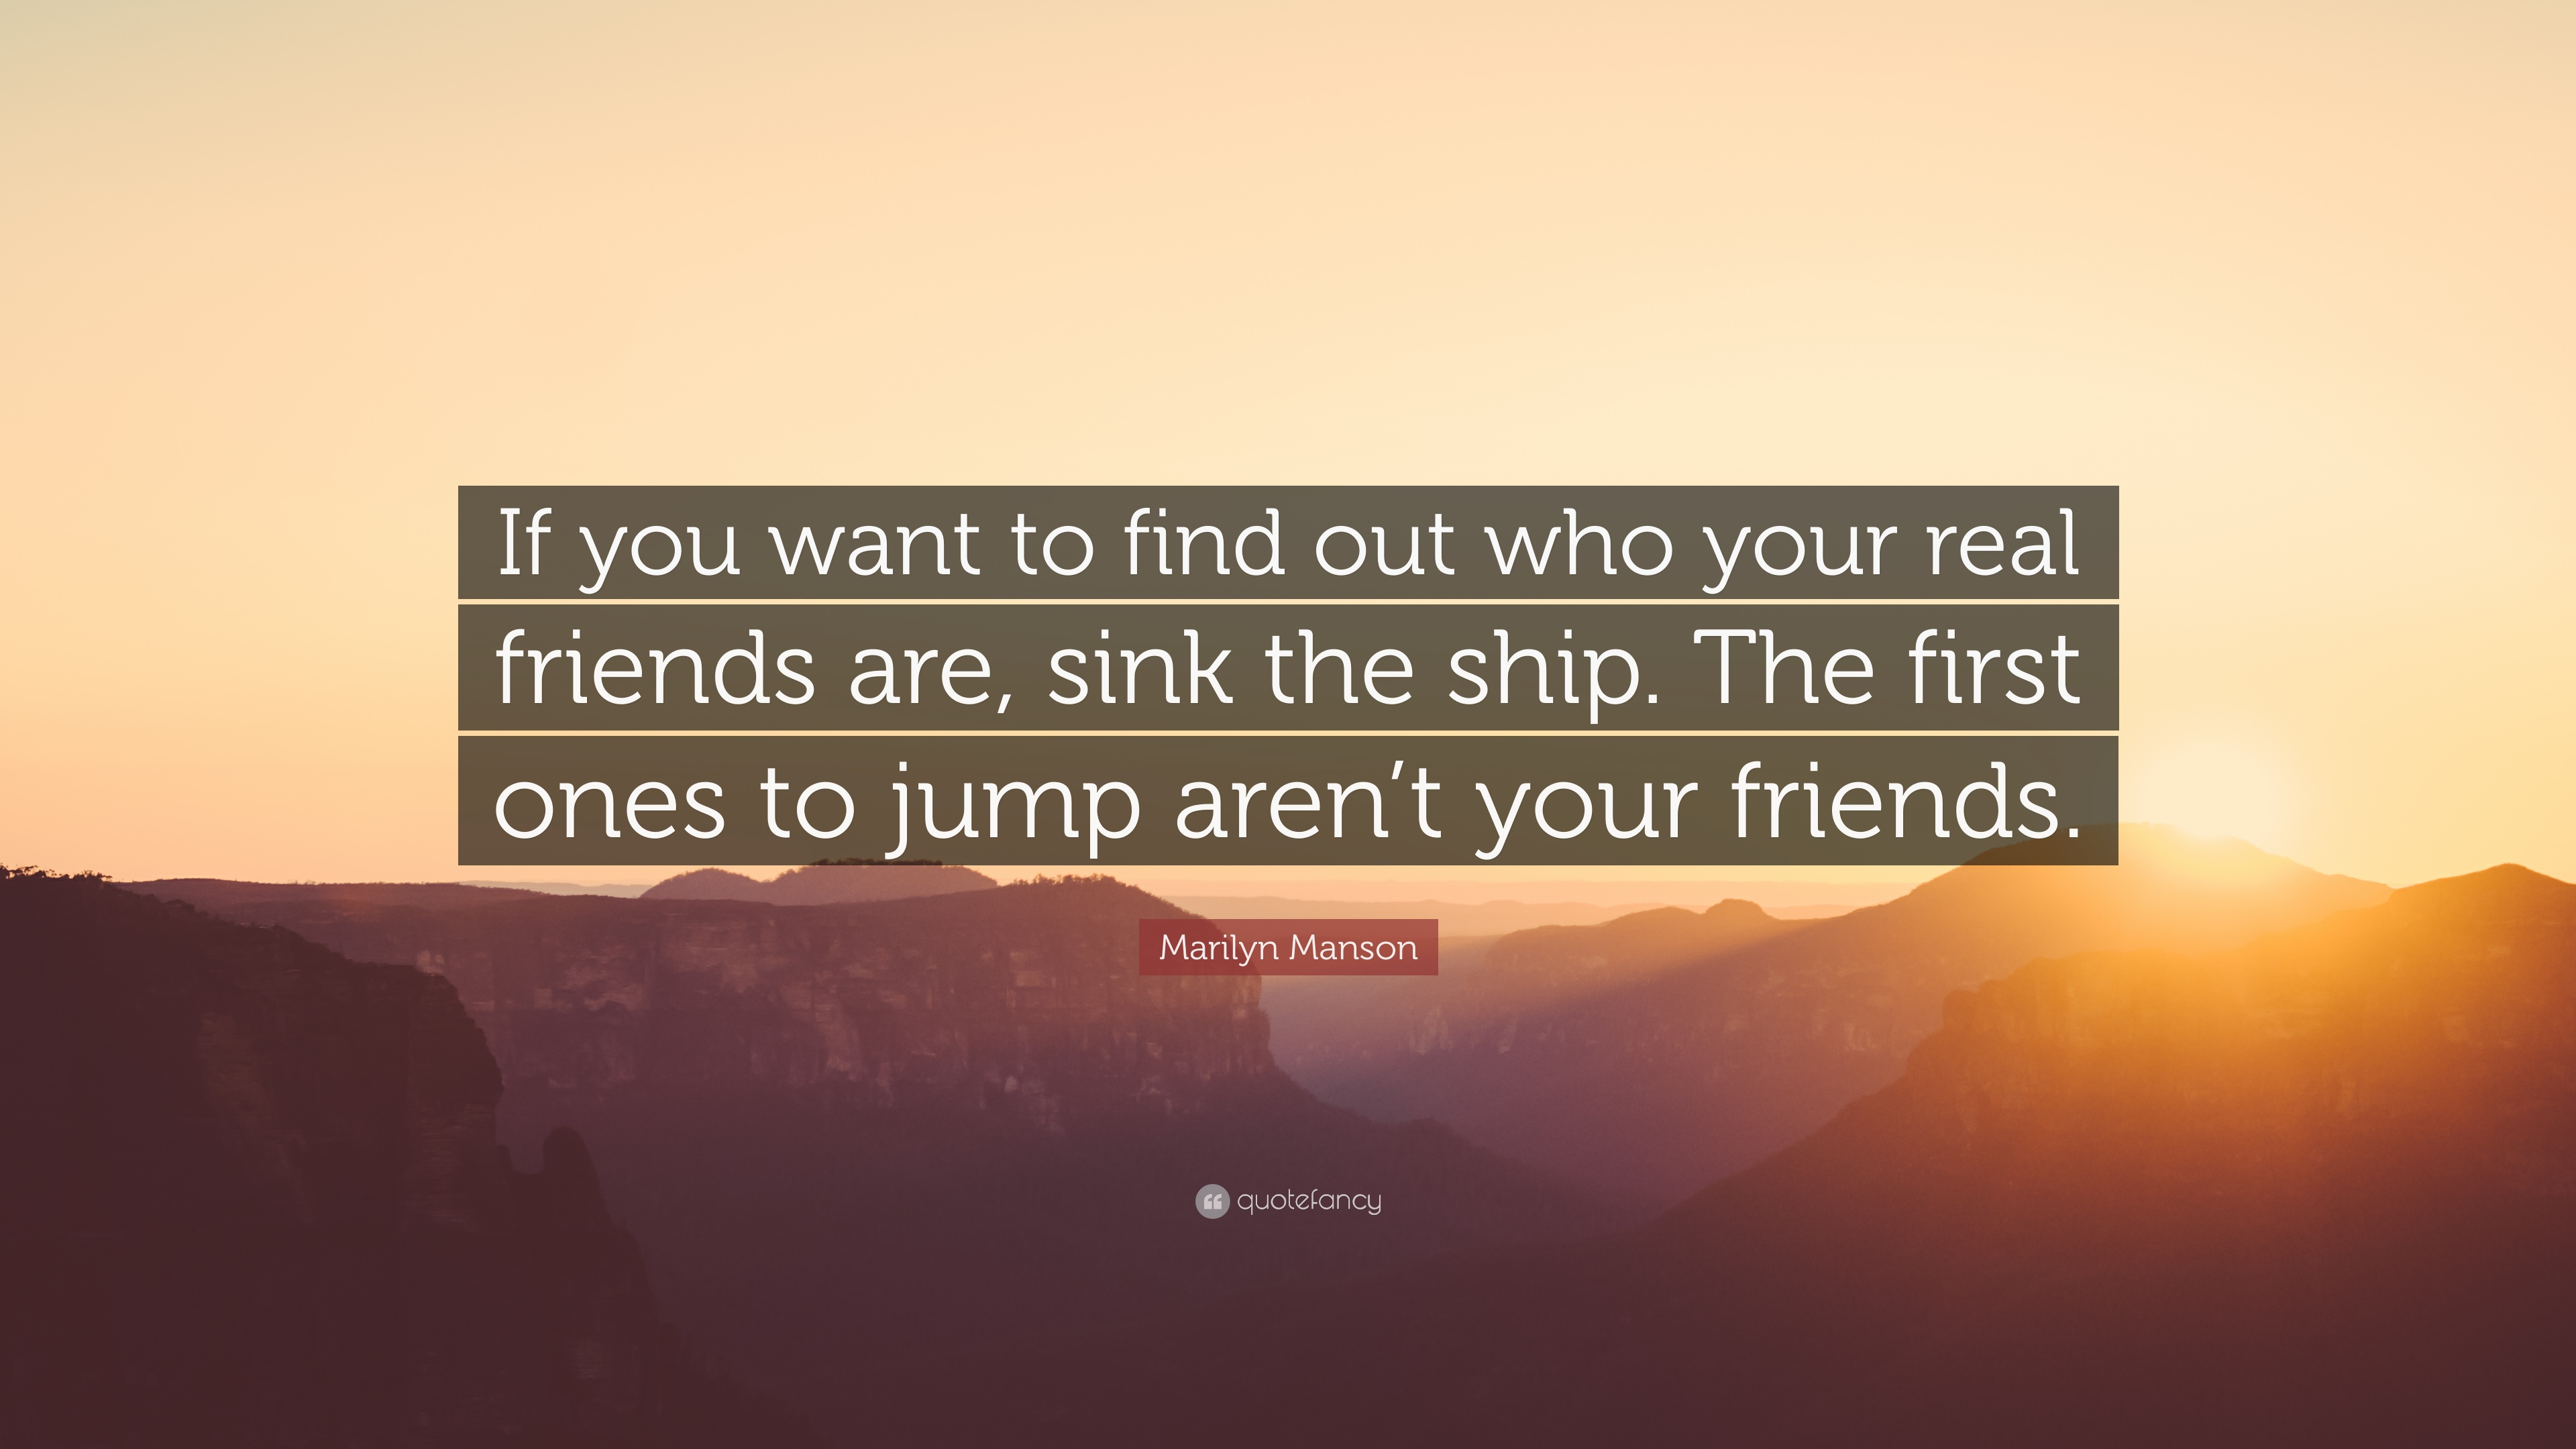 Marilyn Manson Quote If You Want To Find Out Who Your Real Friends